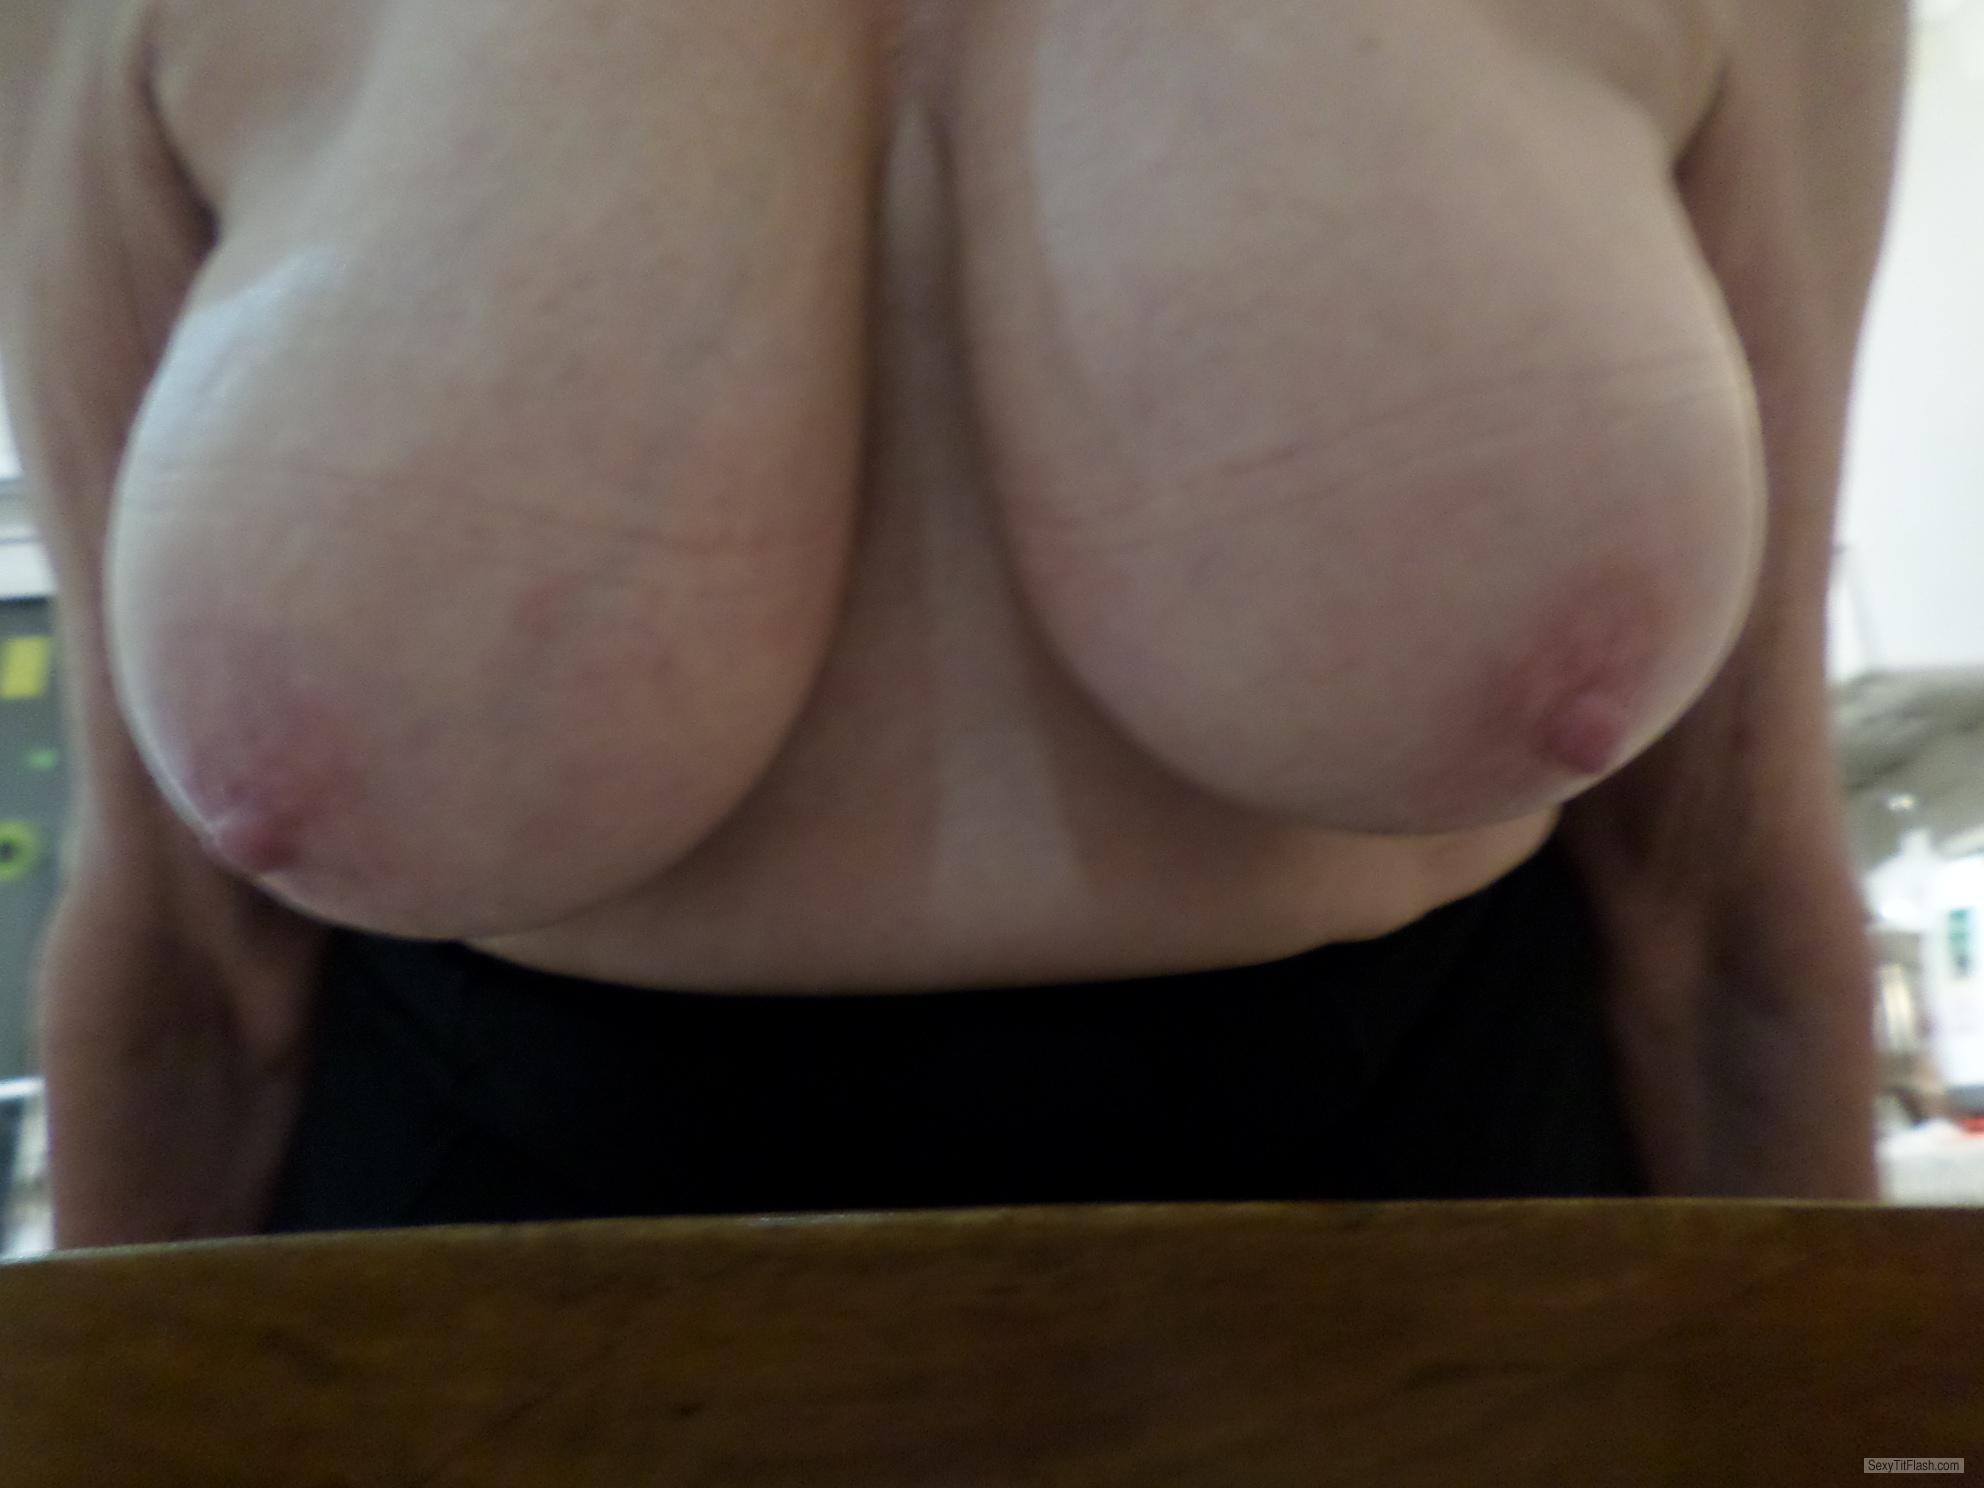 Tit Flash: My Extremely Big Tits - Horny! from United Kingdom